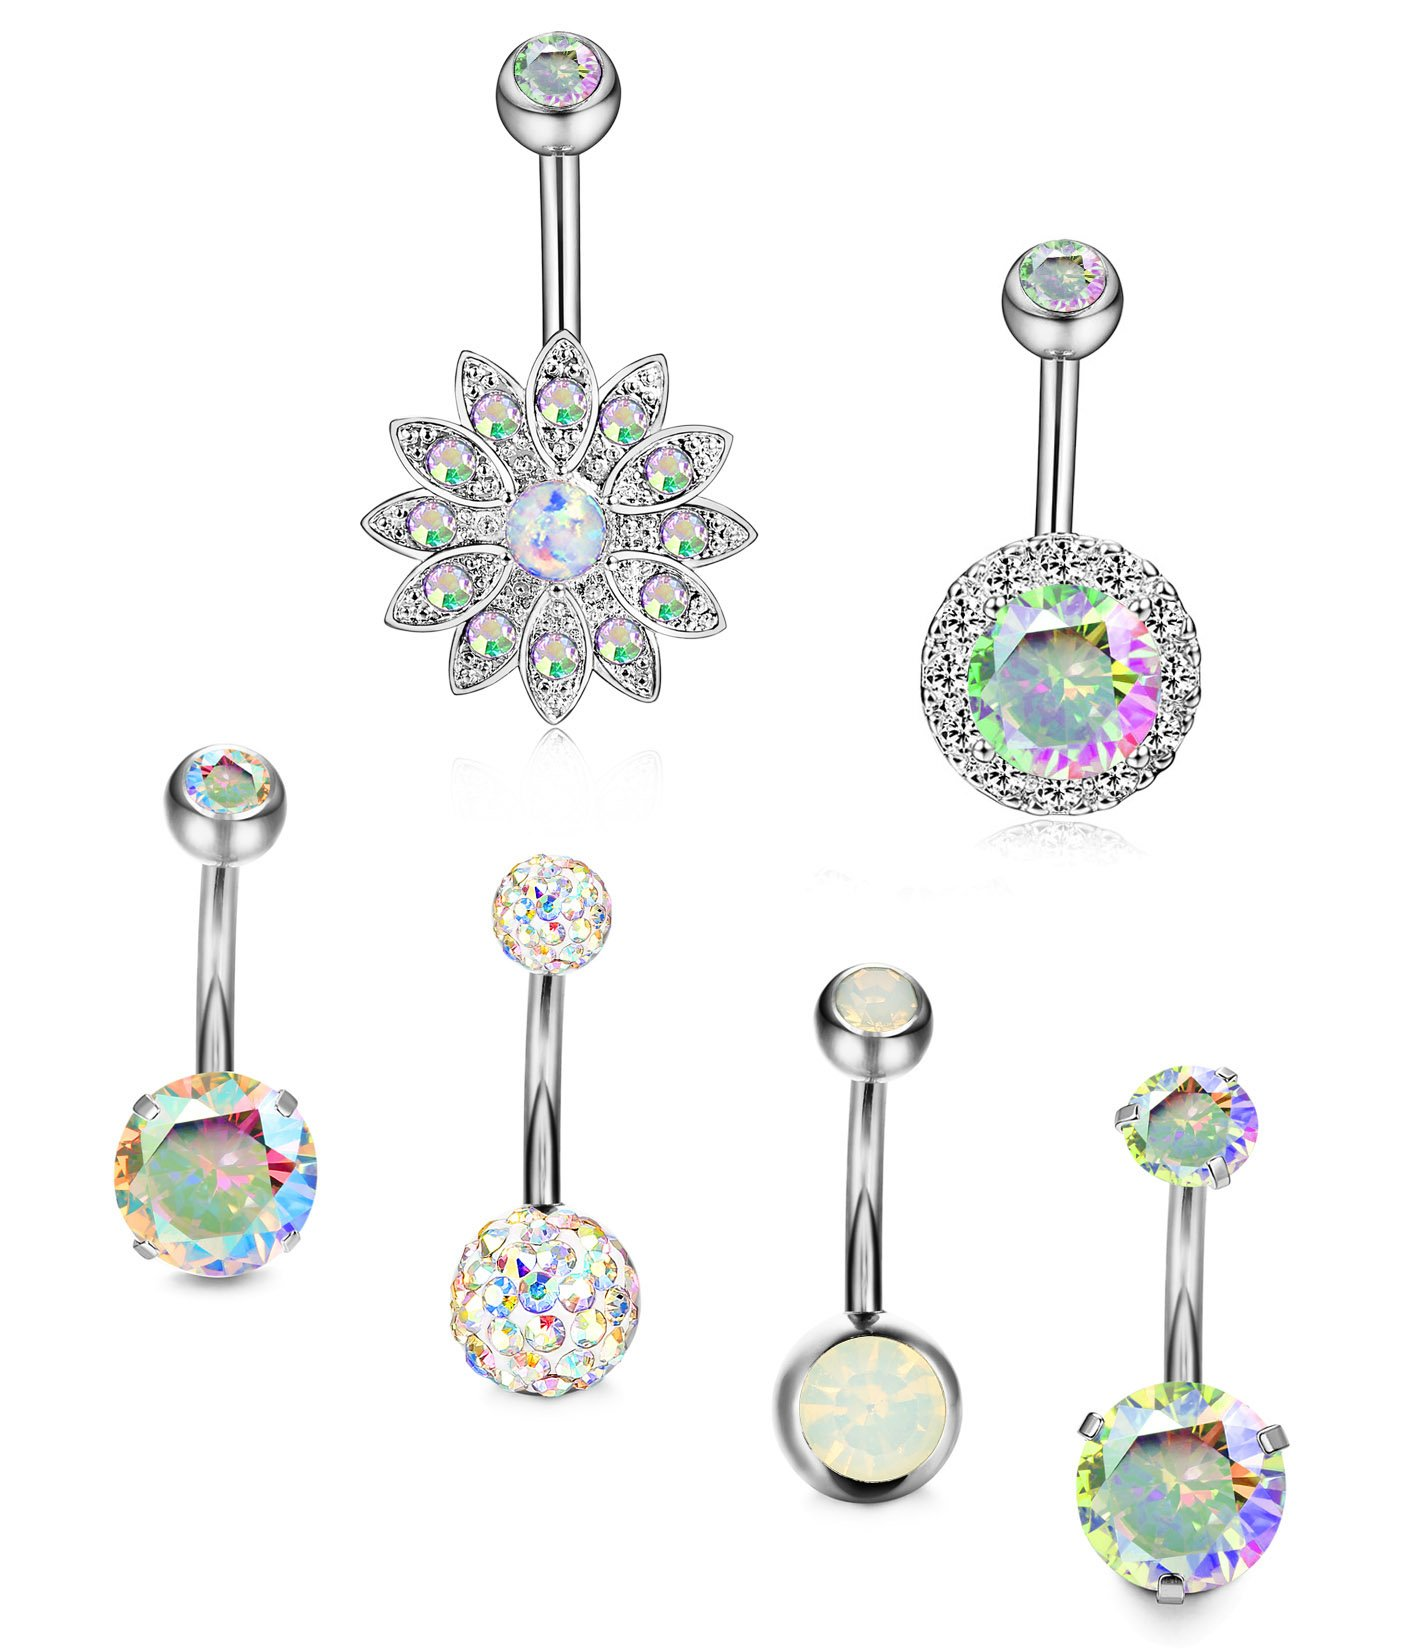 Thunaraz 6Pcs 14G Belly Button Rings Stainless Steel Navel Rings CZ Body Jewelry Created-Opal Piercing Colorful